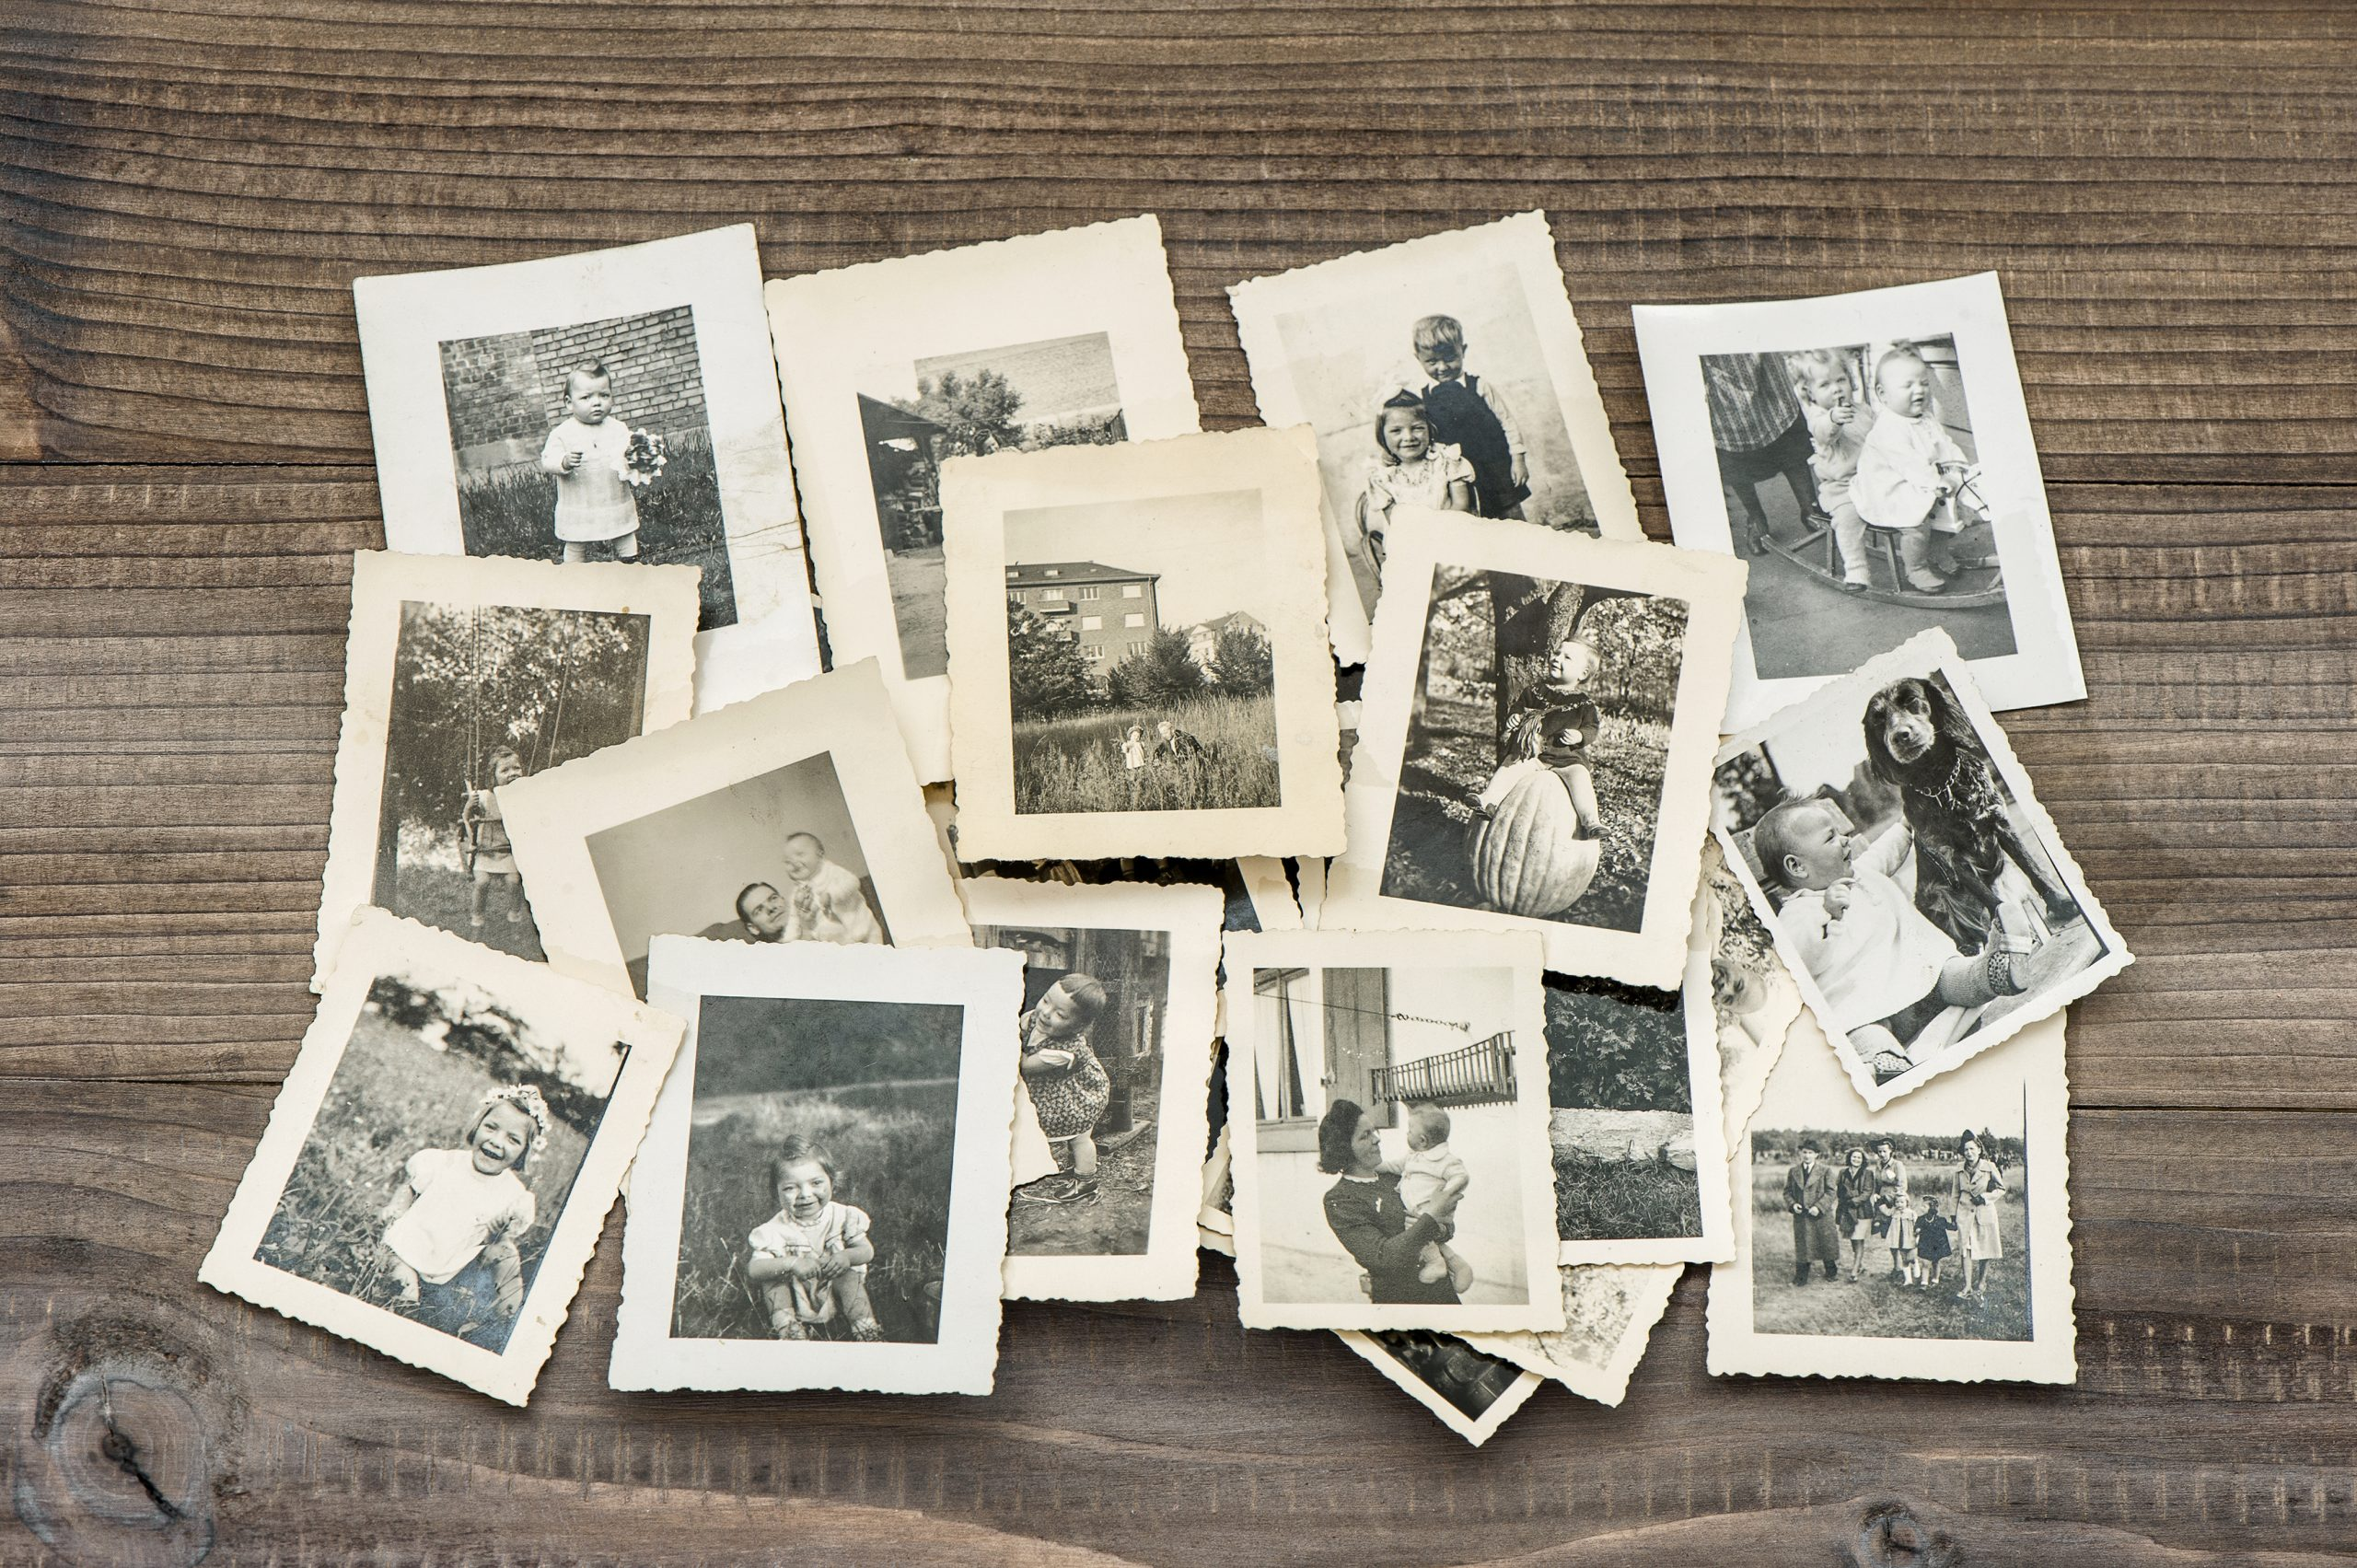 Old family photos on wooden table. Vintage pictures